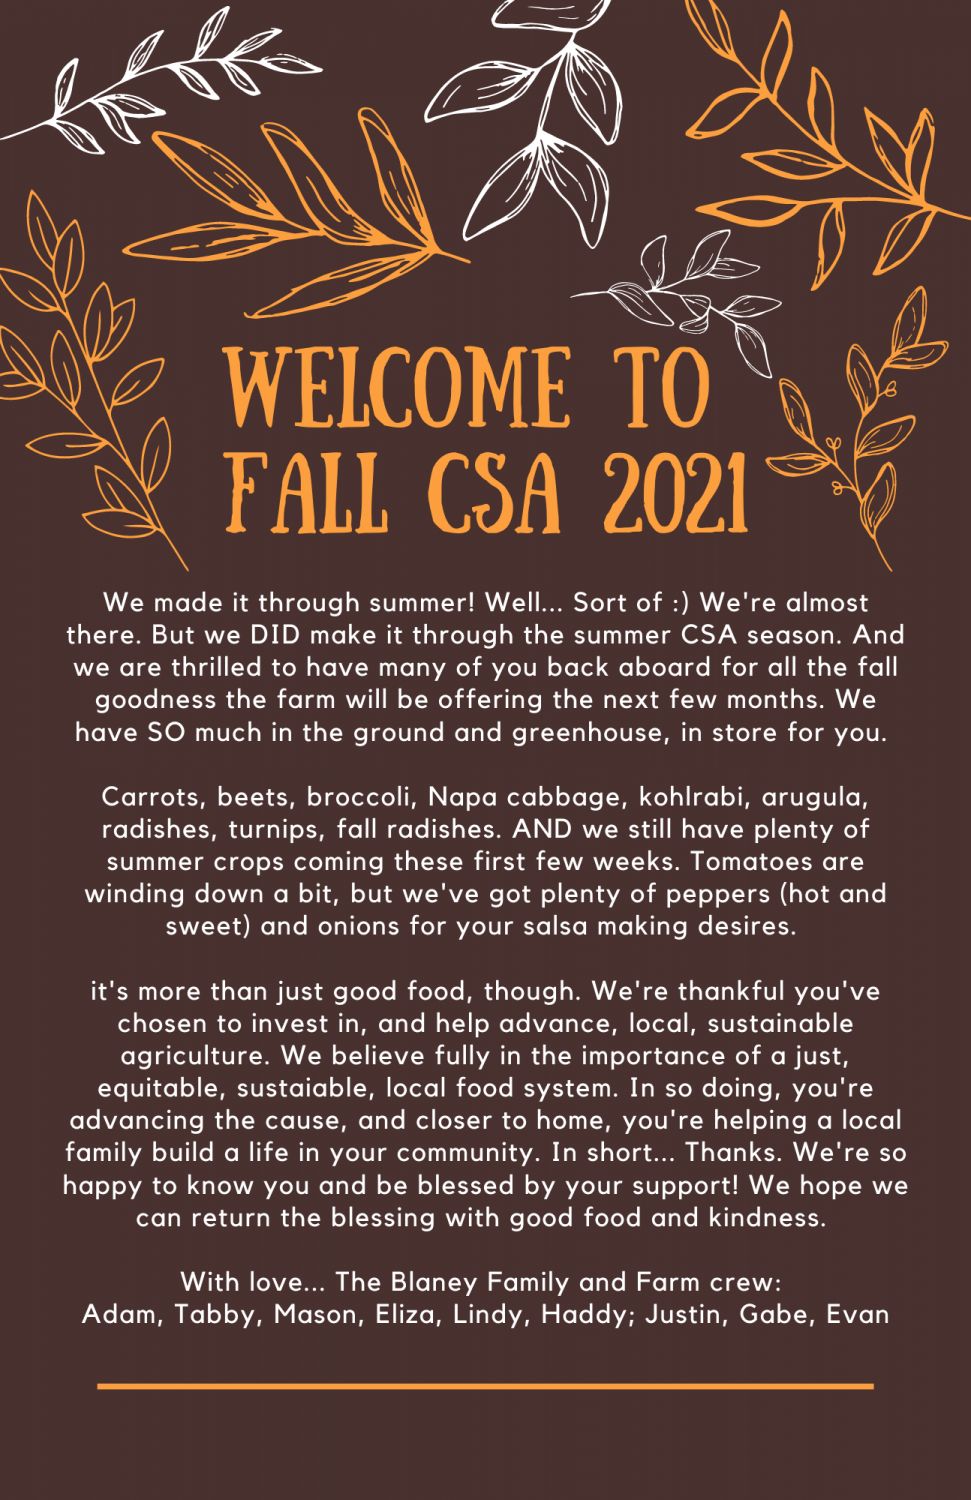 Fall CSA is Here! Here's What's in Store...